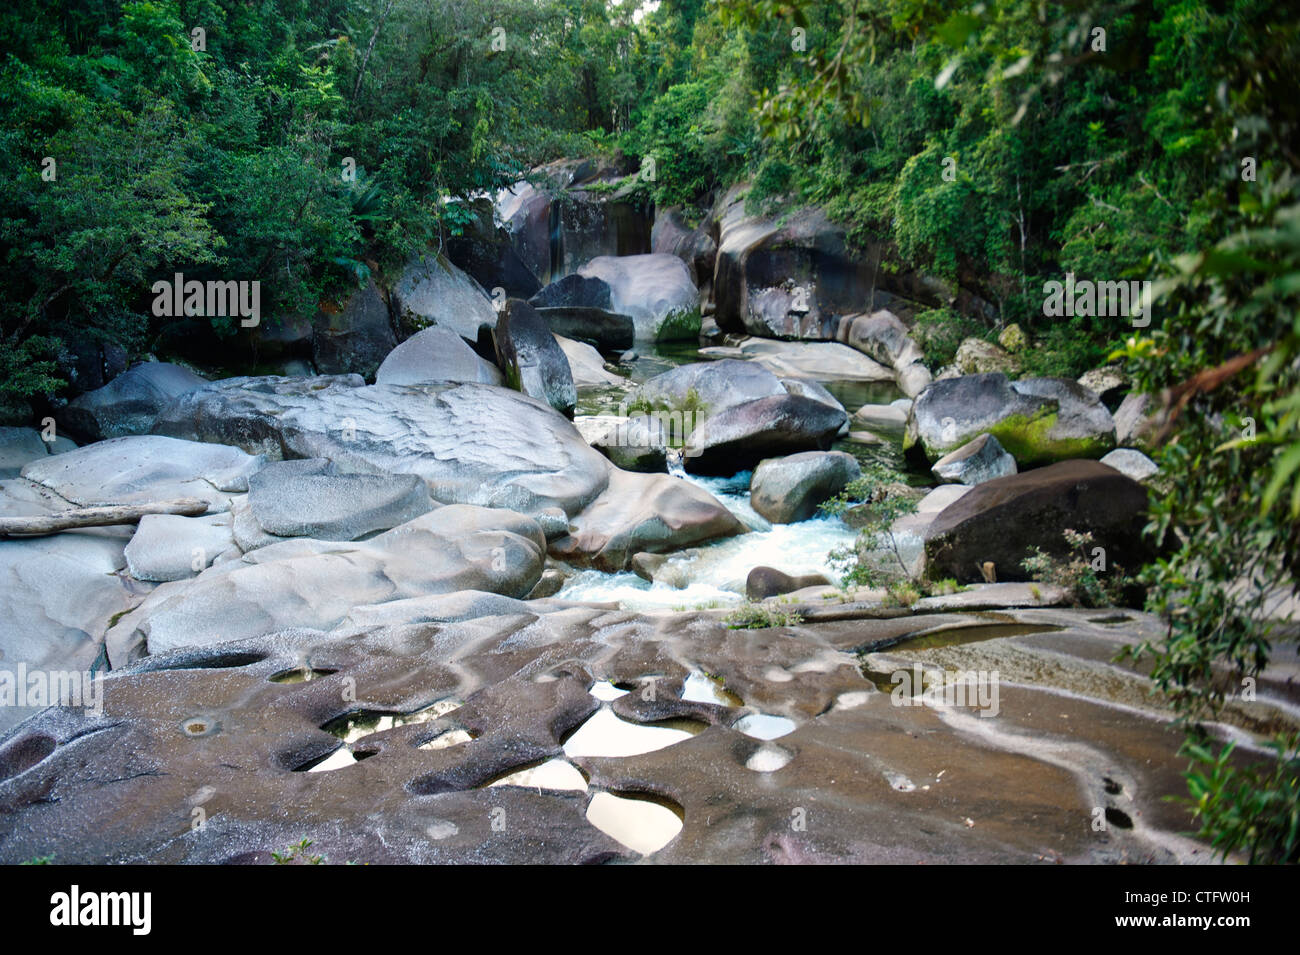 'The Boulders' at Babinda Creek, mighty granites blocking the water in the rainforest of the wet tropics - Stock Image